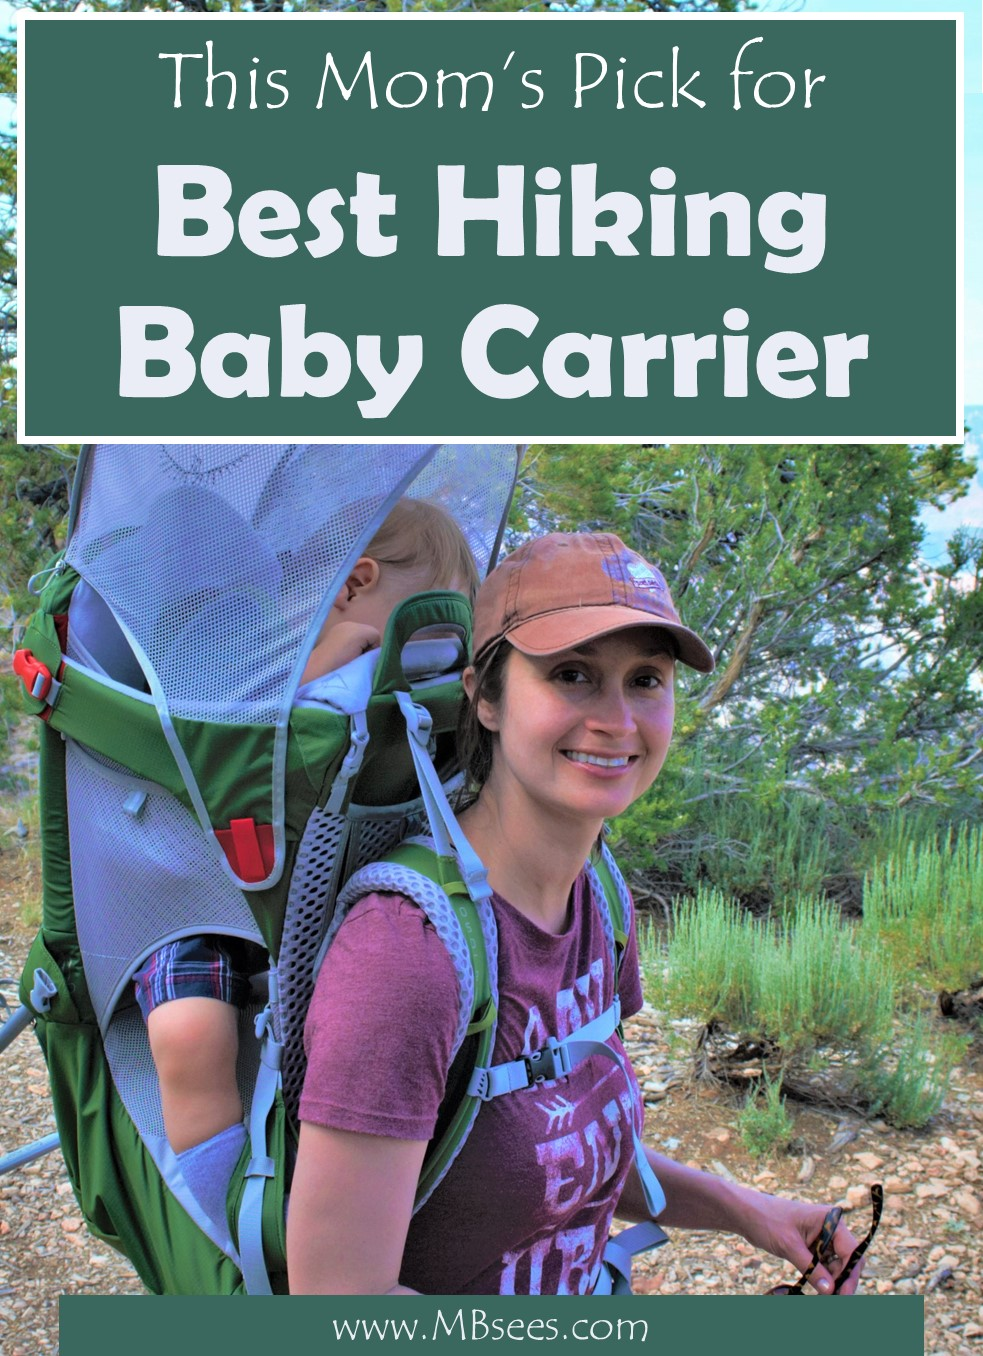 Adventure doesn't have to end when you have a baby, you just need the best travel gear for kids! Check out our review of the best baby carrier for hiking with kids, and outdoor travel with kids. Pin it for later and get the best baby hiking carrier! #HikingBabyCarrier #BabyHikingCarrier #BabyHikingBackpack #travelwithkids #travelgear | Hiking Baby Carrier | Baby Hiking Backpack